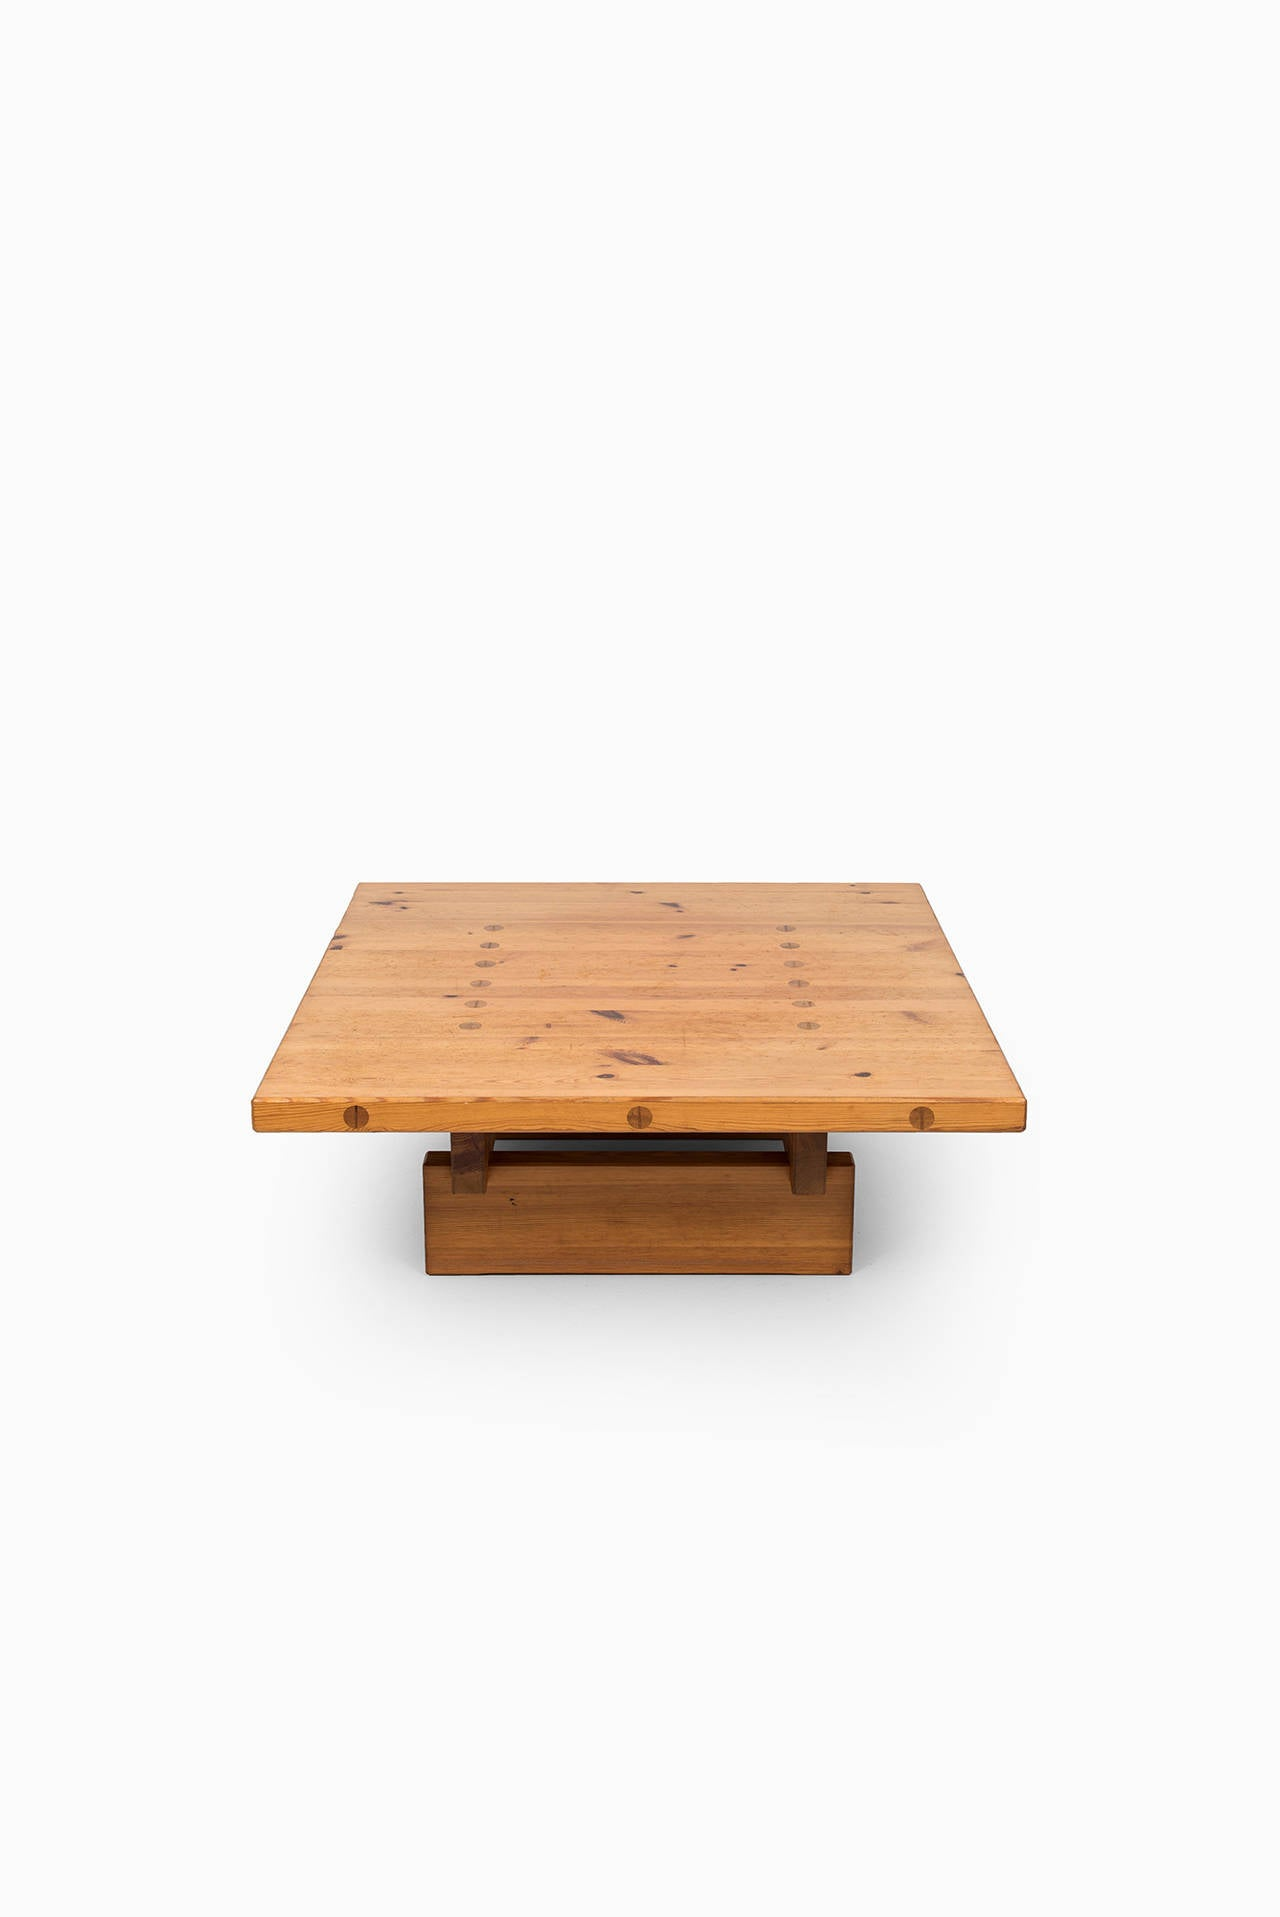 Roland Wiliamsson Coffee Table In Solid Pine At 1stdibs